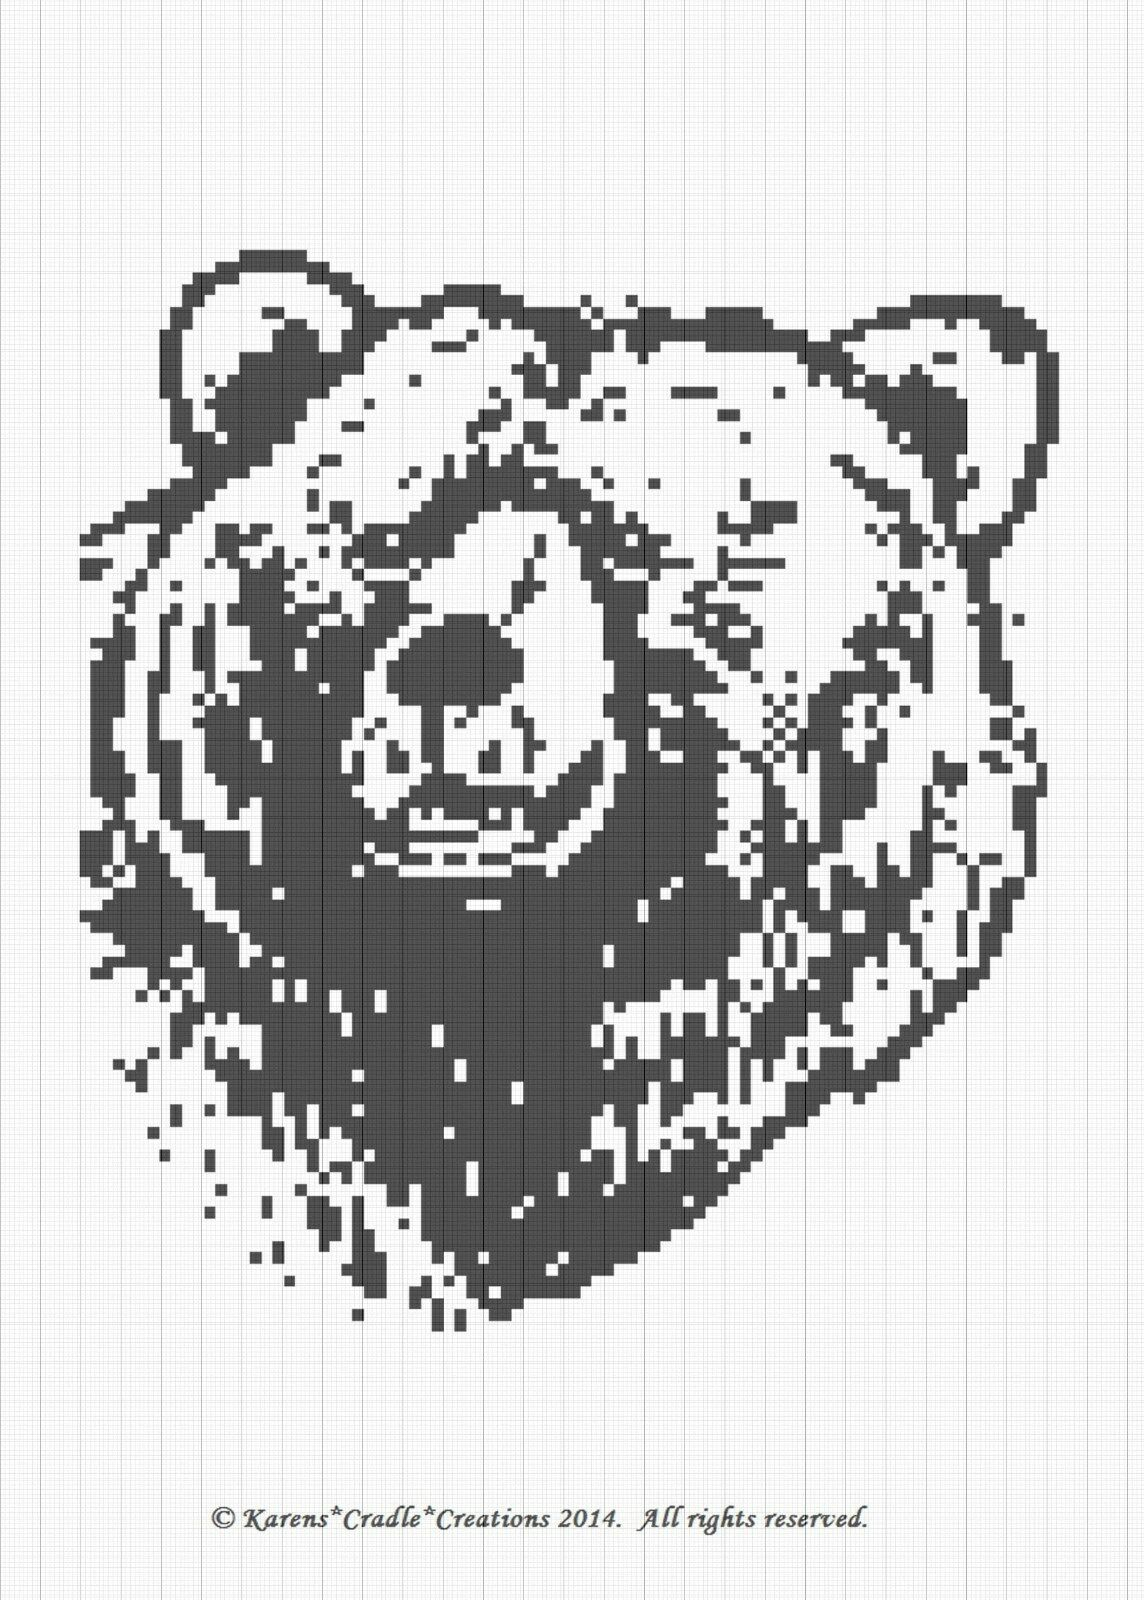 Crochet Patterns Grizzly Bear Graph Afghan Pattern Chart 600 Round Ripple With Diagram 1 Of See More